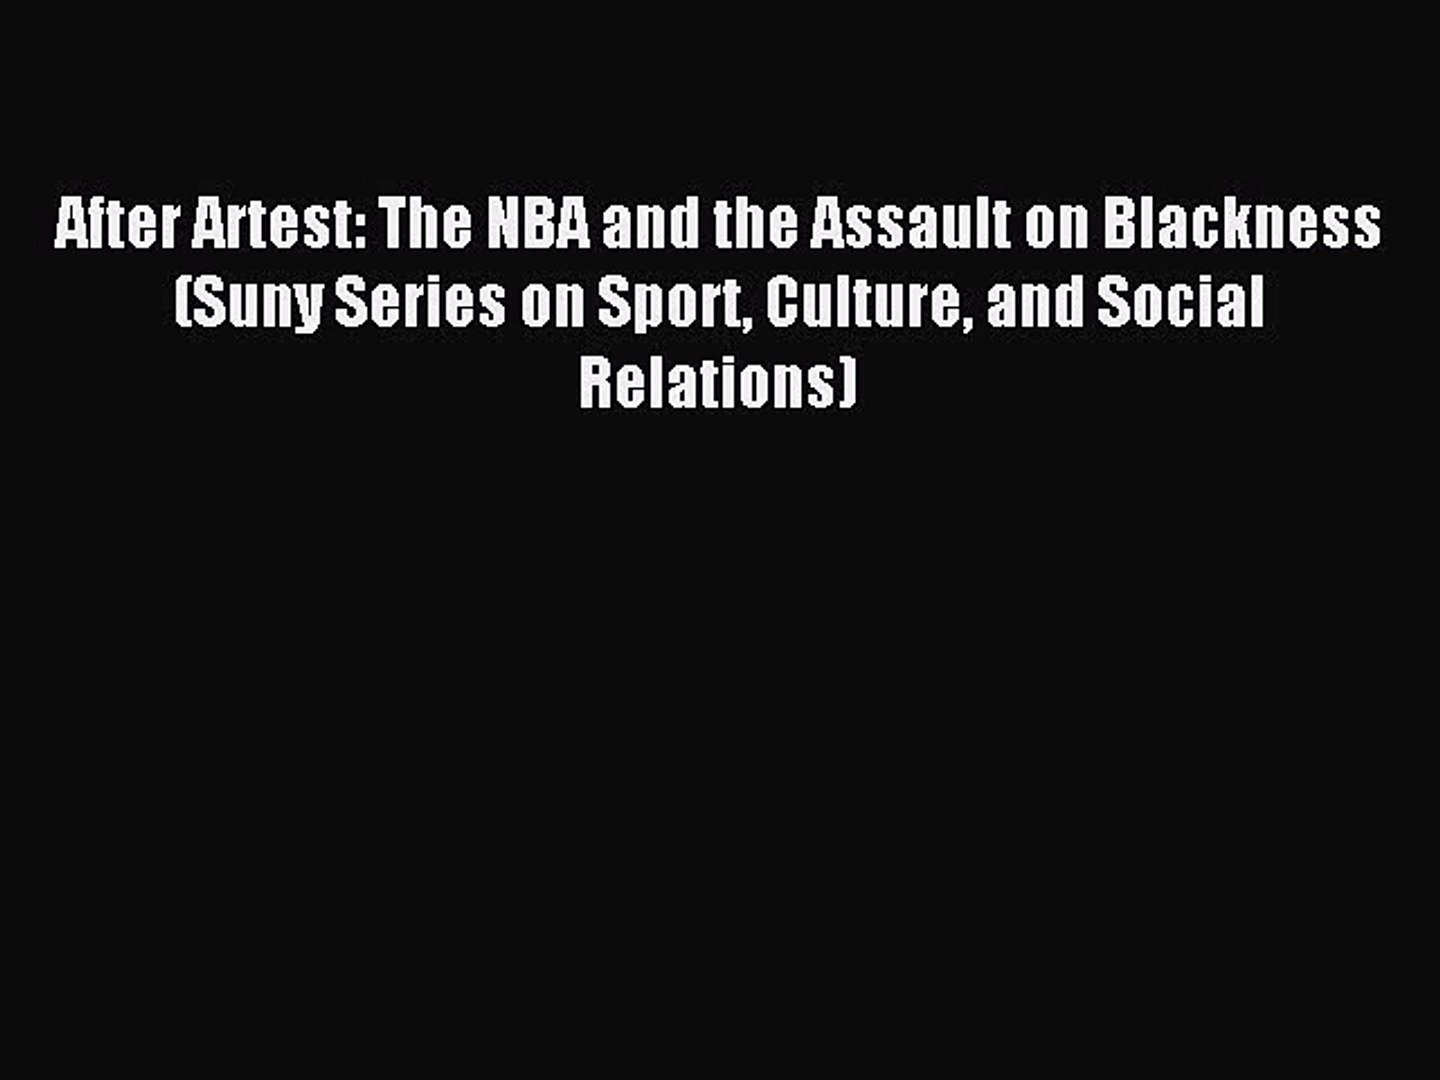 Read After Artest: The NBA and the Assault on Blackness (Suny Series on Sport Culture and Social